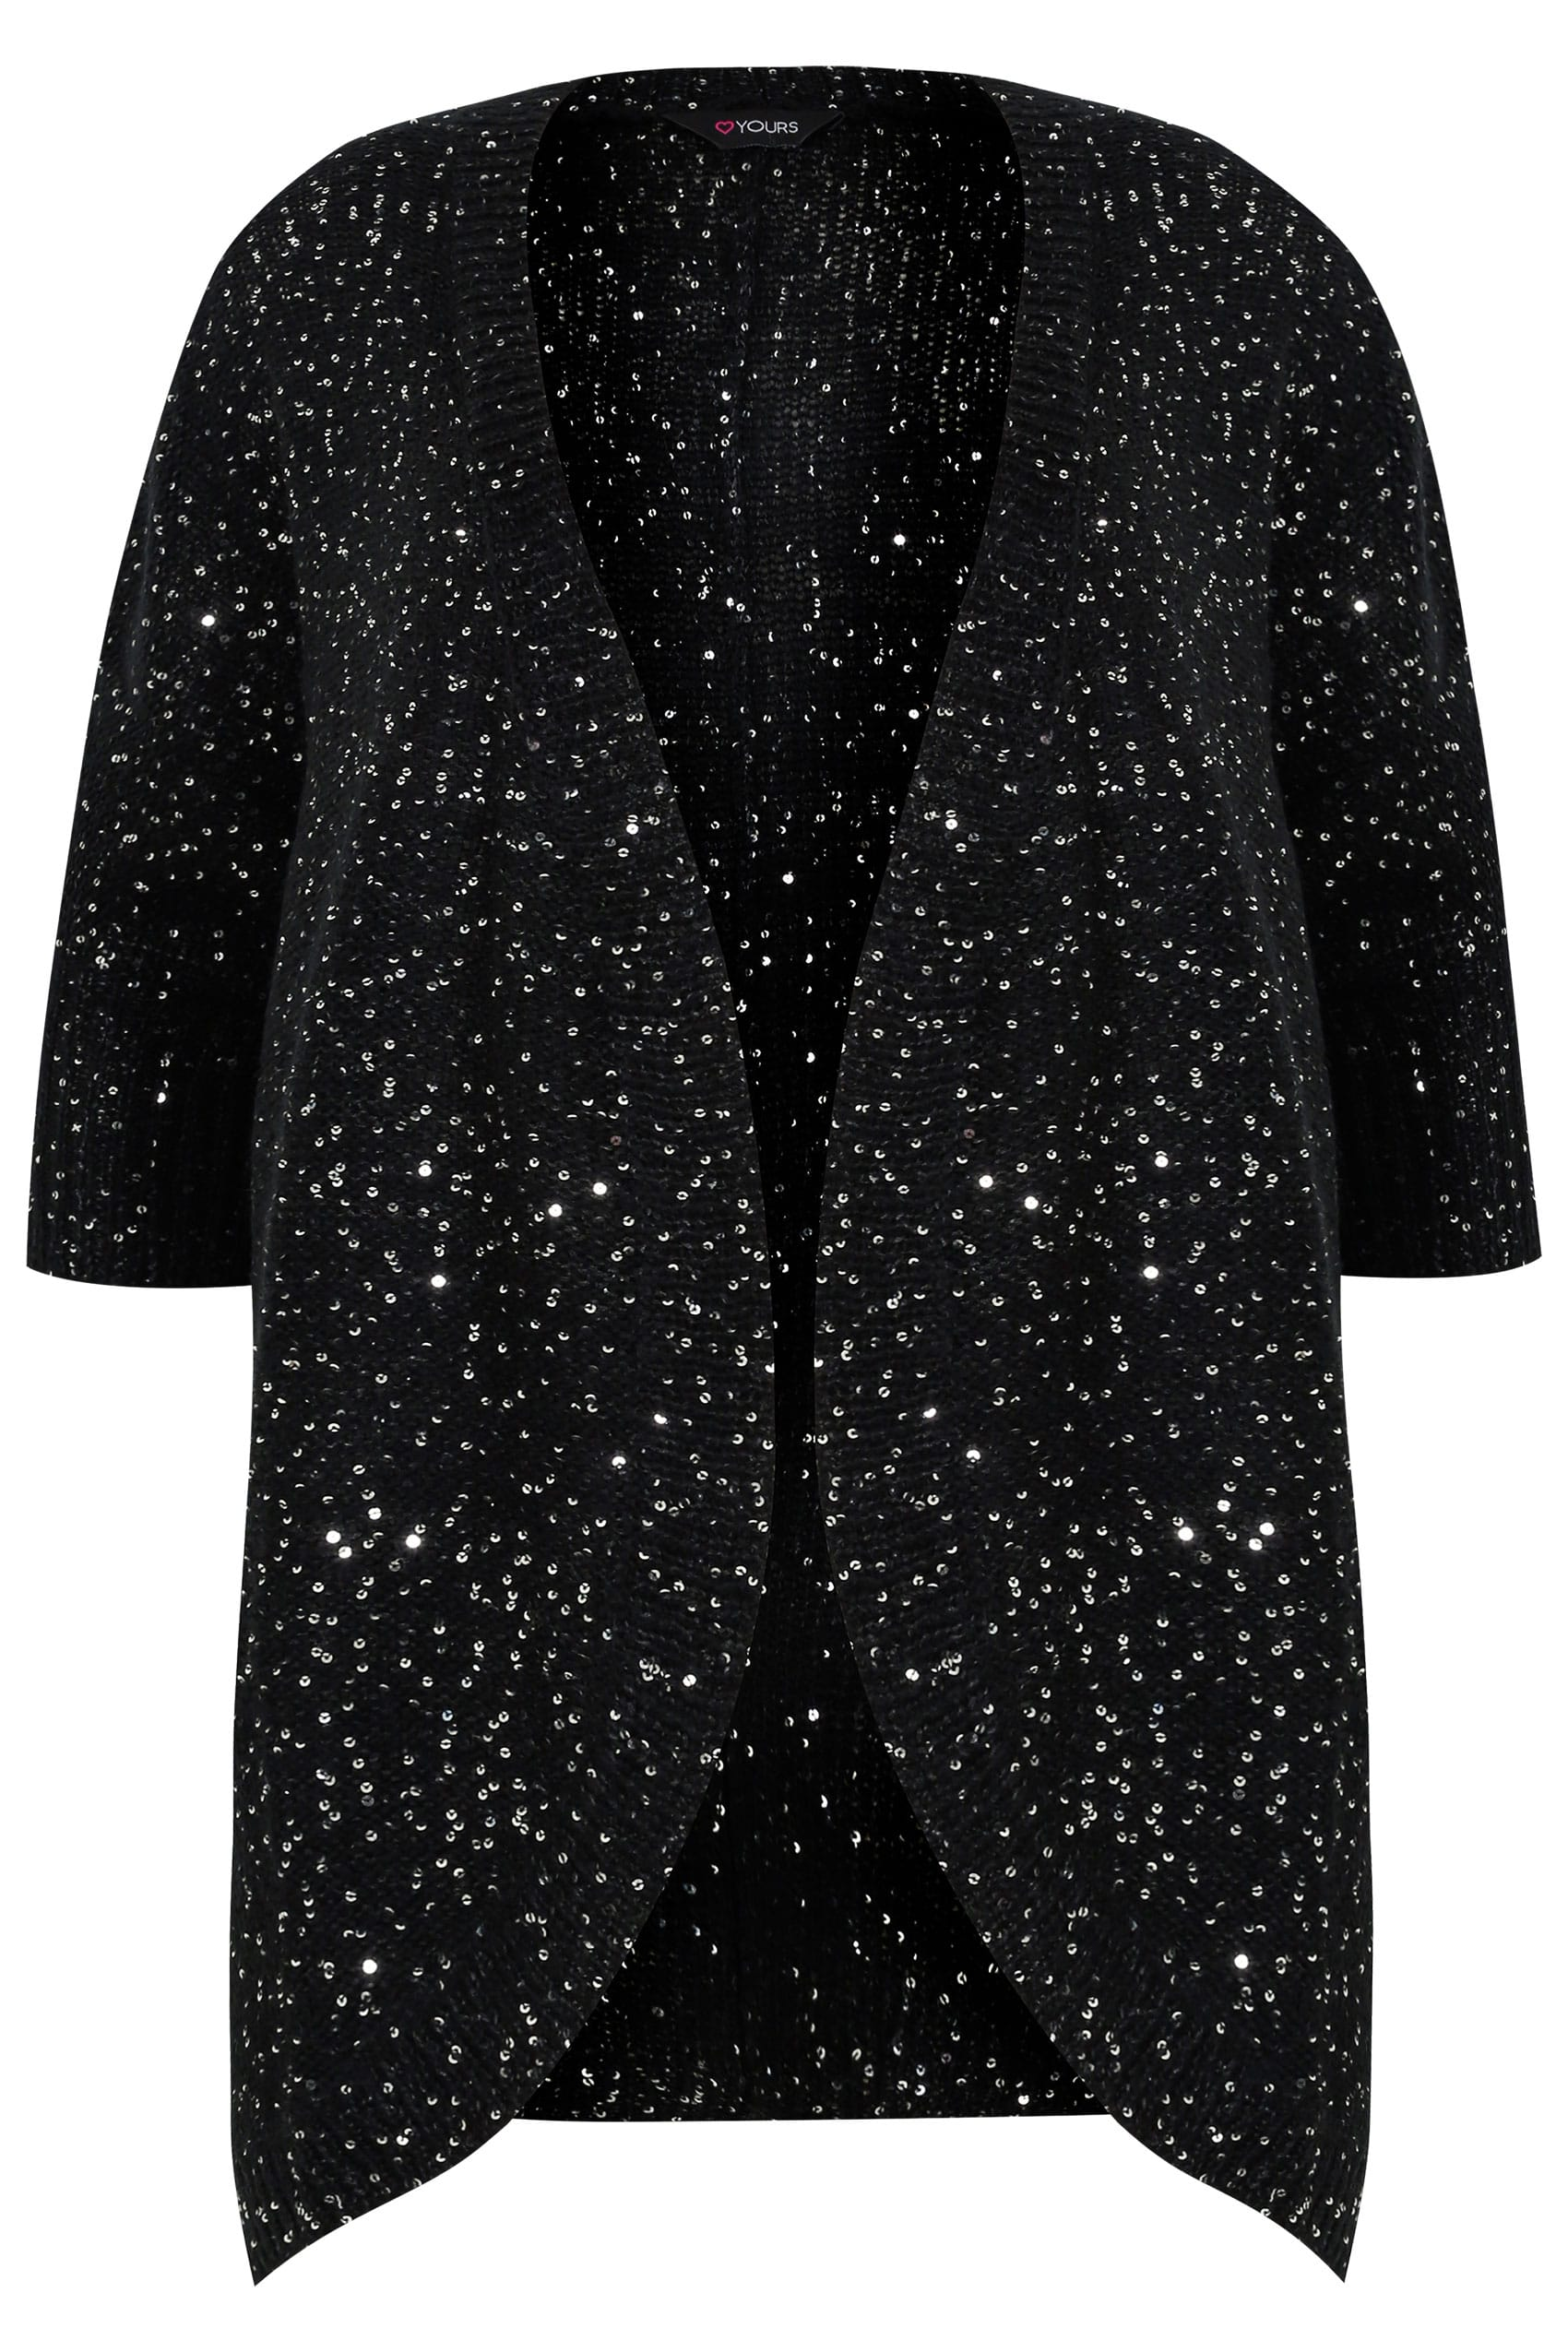 Black Sequin Embellished Knitted Batwing Cardigan, Plus size 16 to 36